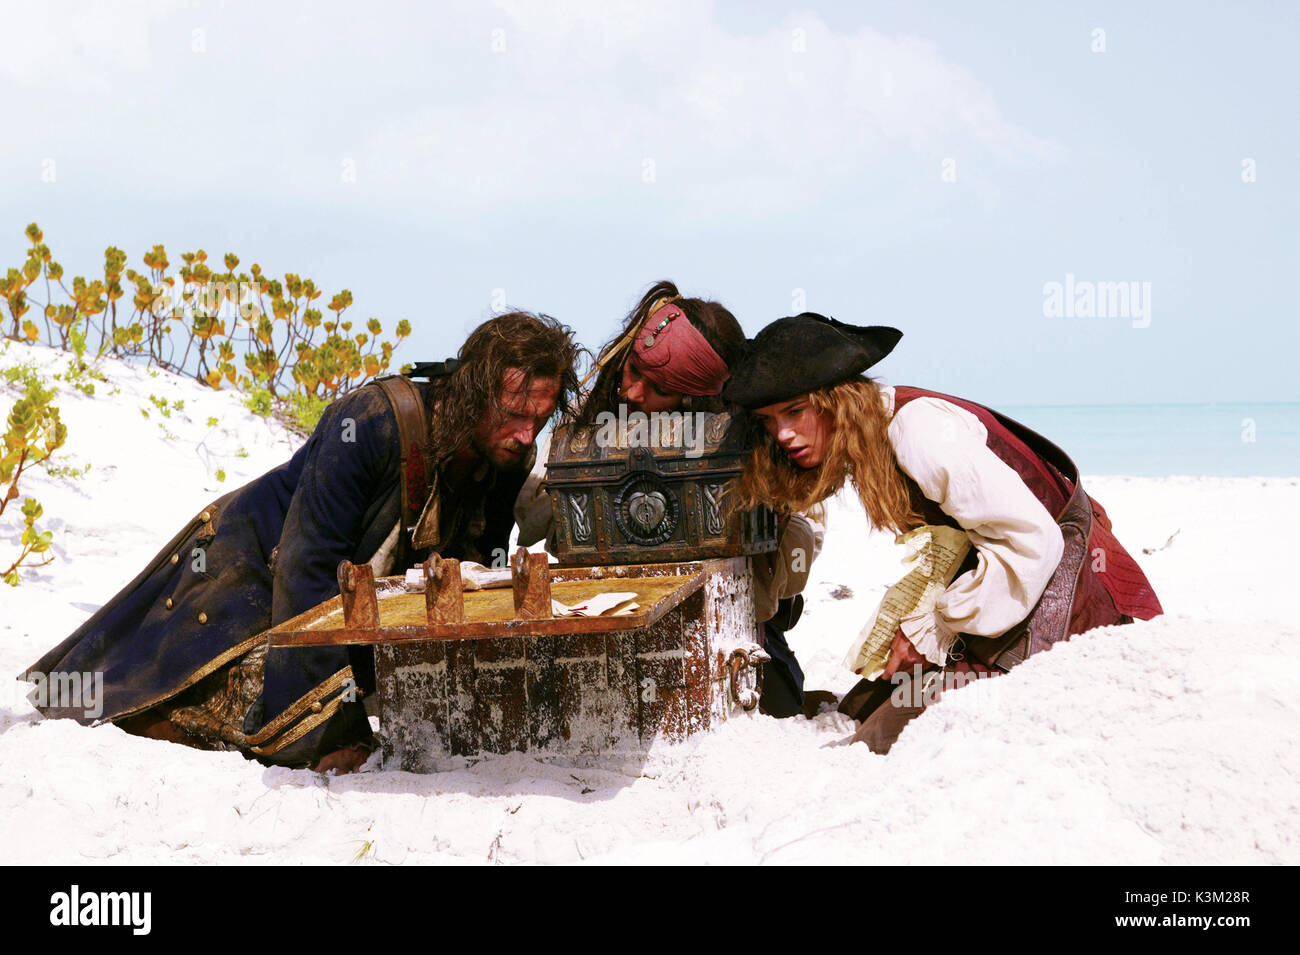 PIRATES OF THE CARIBBEAN: DEAD MAN'S CHEST [US 2006]  JACK DAVENPORT, JOHNNY DEPP, KEIRA KNIGHTLEY                Date: 2006 - Stock Image